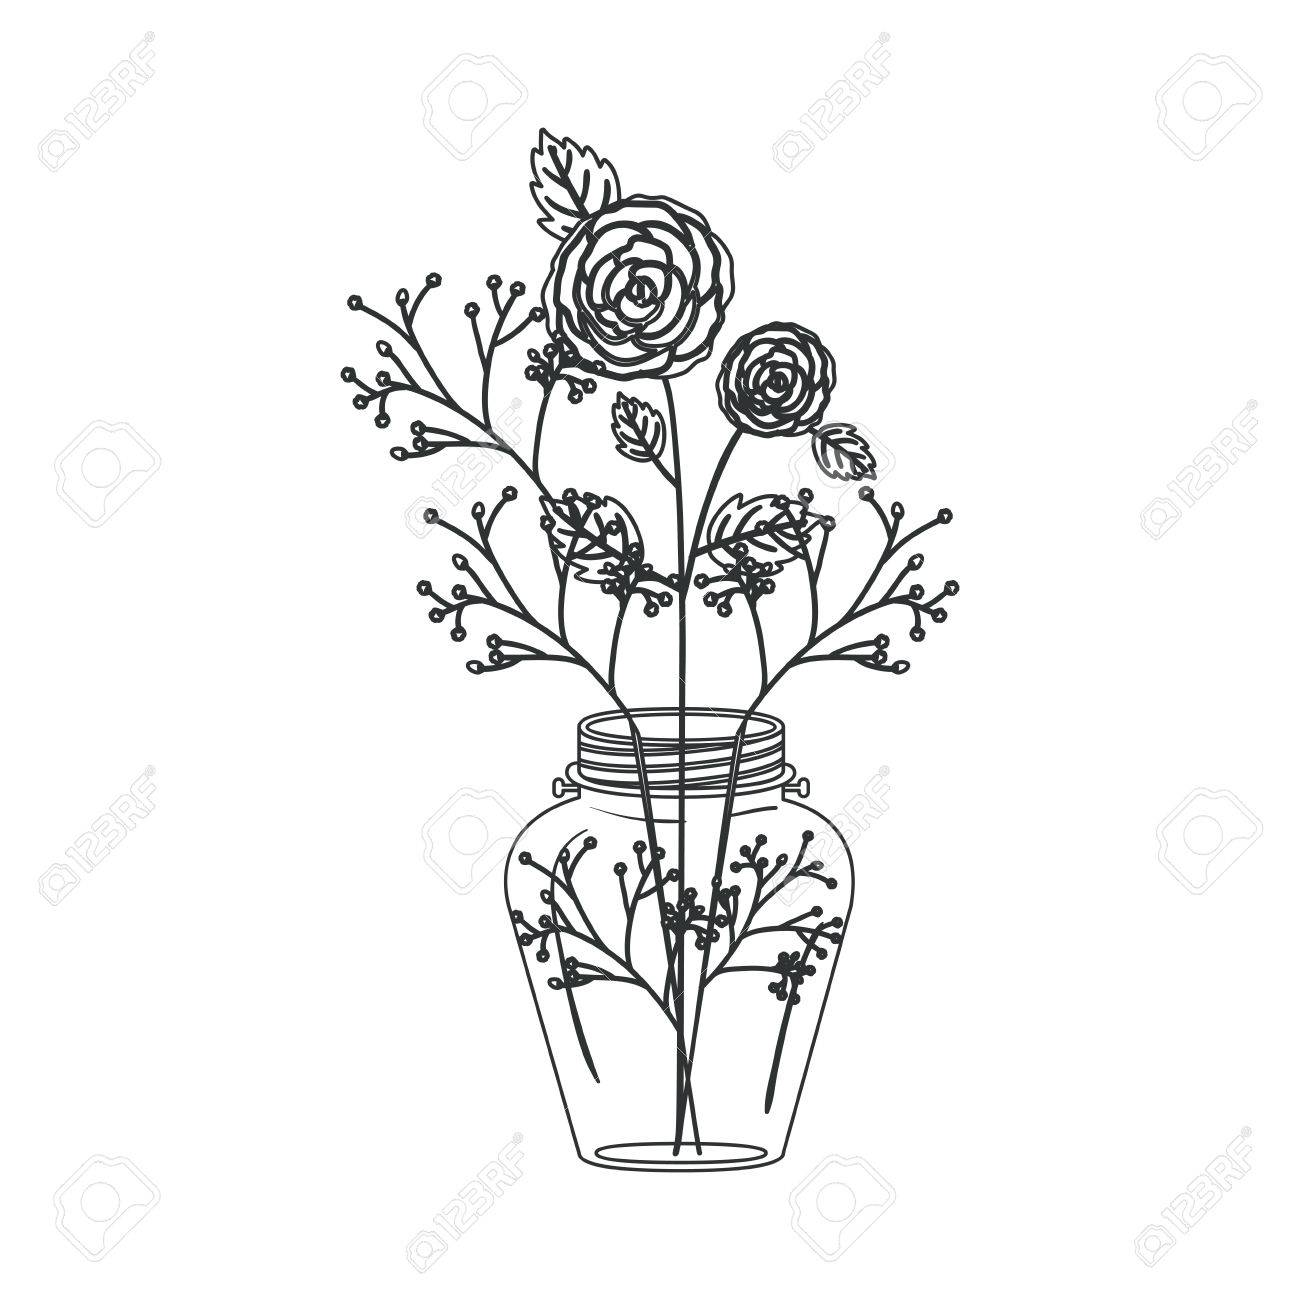 Mason jar and flowers clipart black and white picture royalty free library Flowers Inside Mason Jar Icon. Decoration Floral Nature And Pl ... picture royalty free library